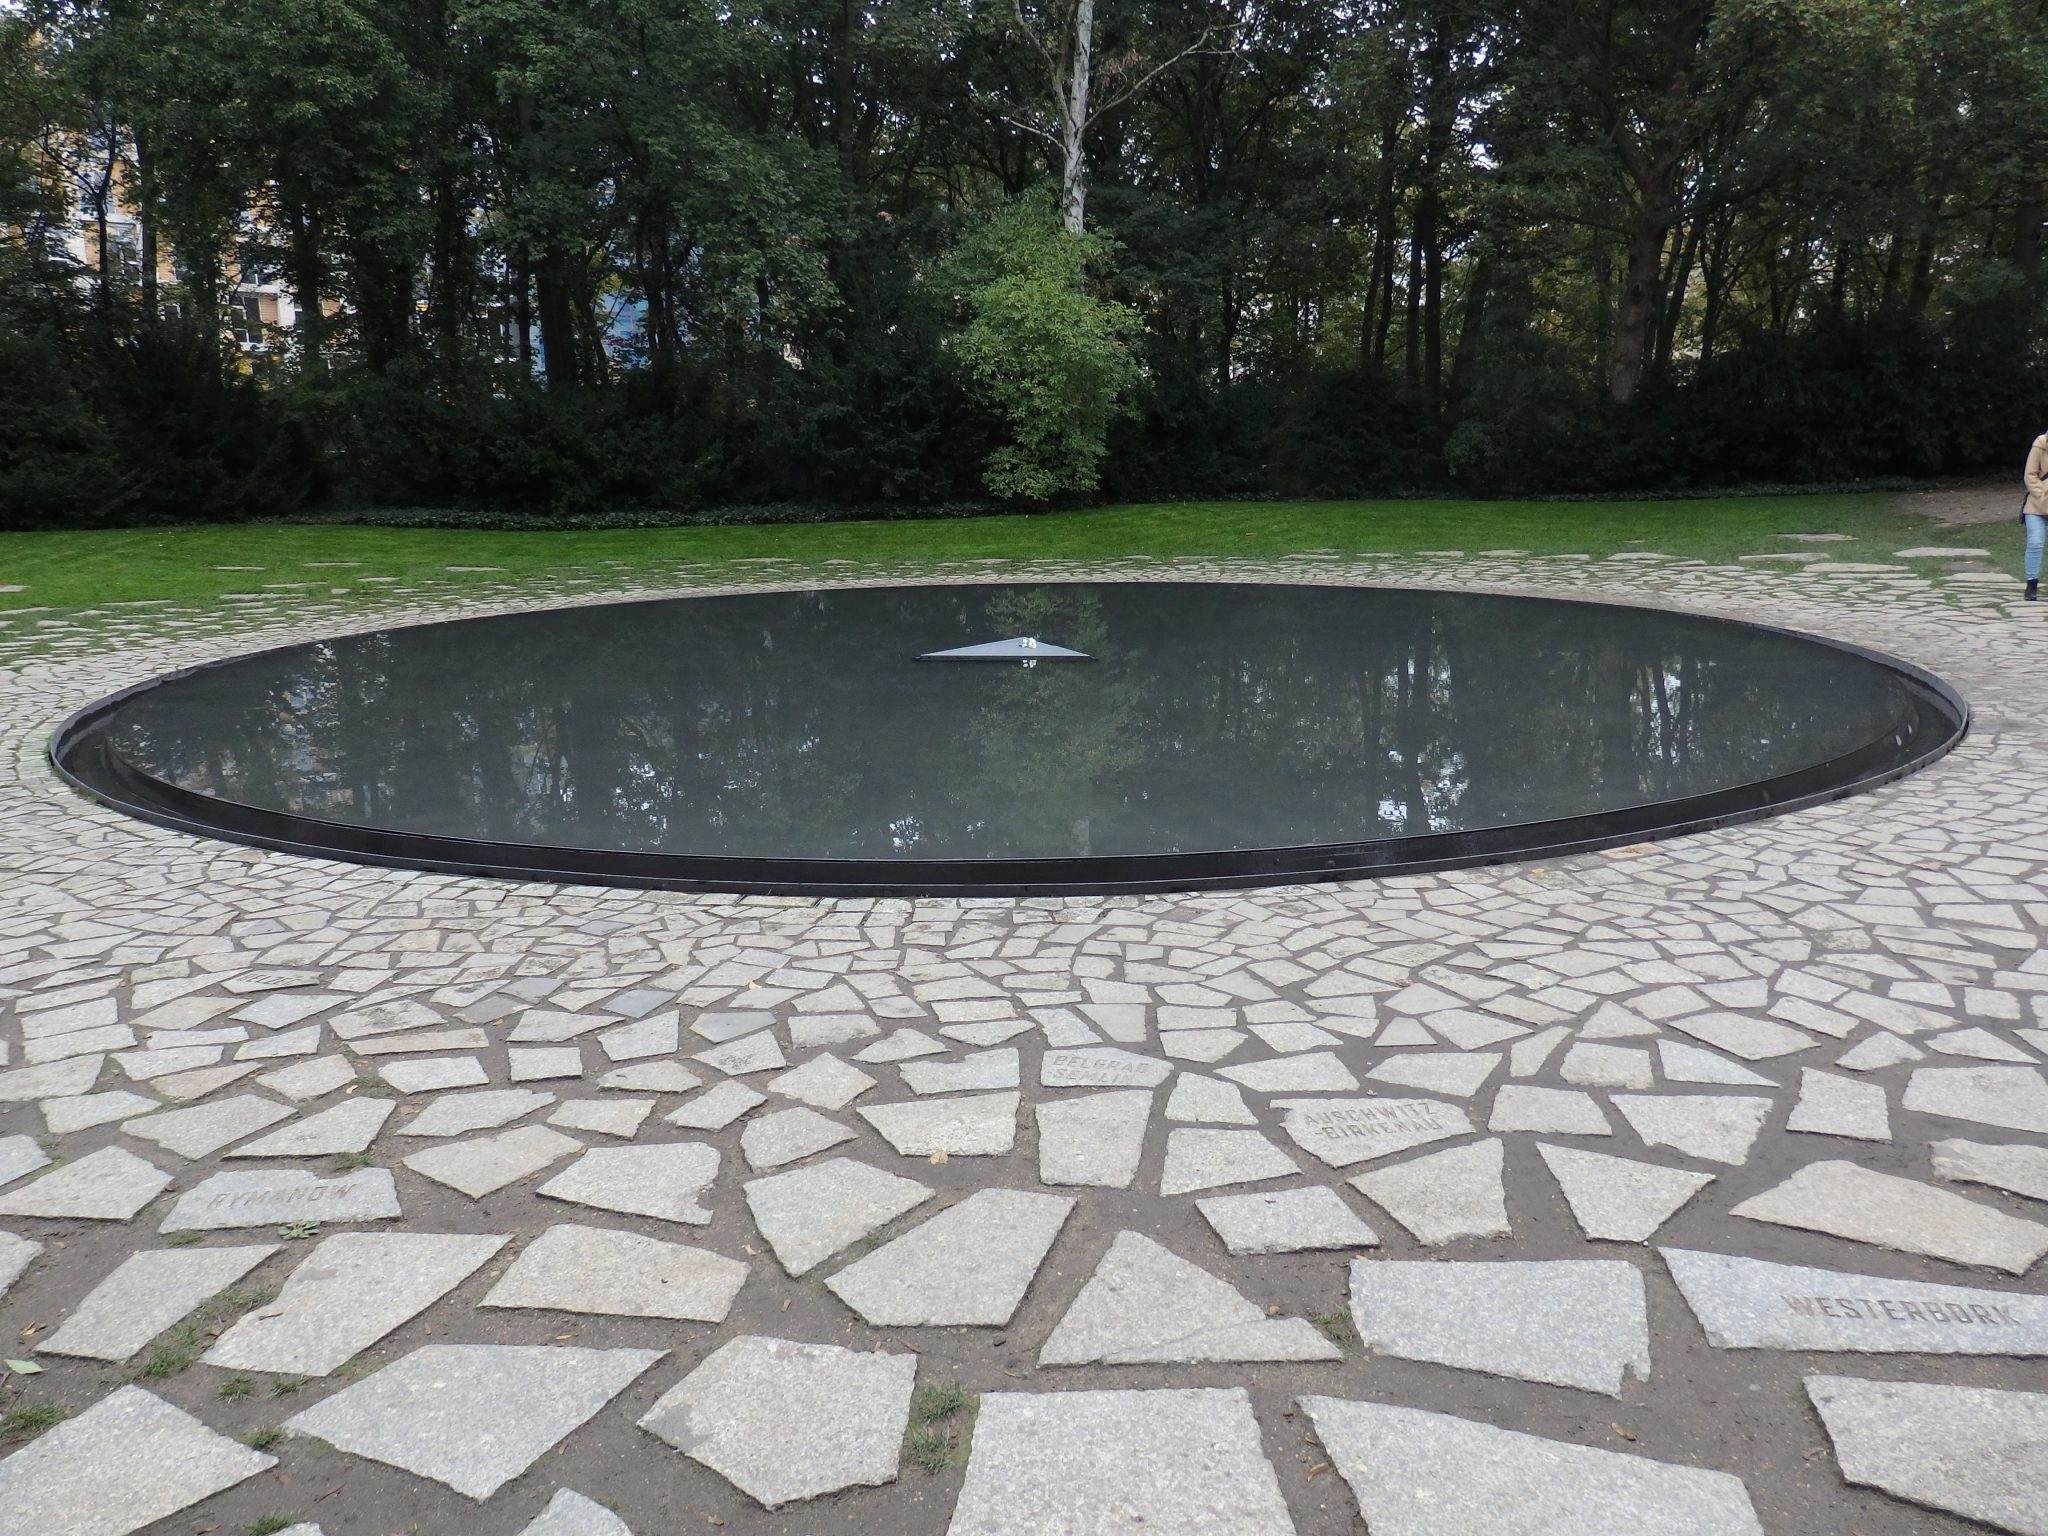 the Memorial to the Sinti and Roma Victims of National Socialism in Berlin